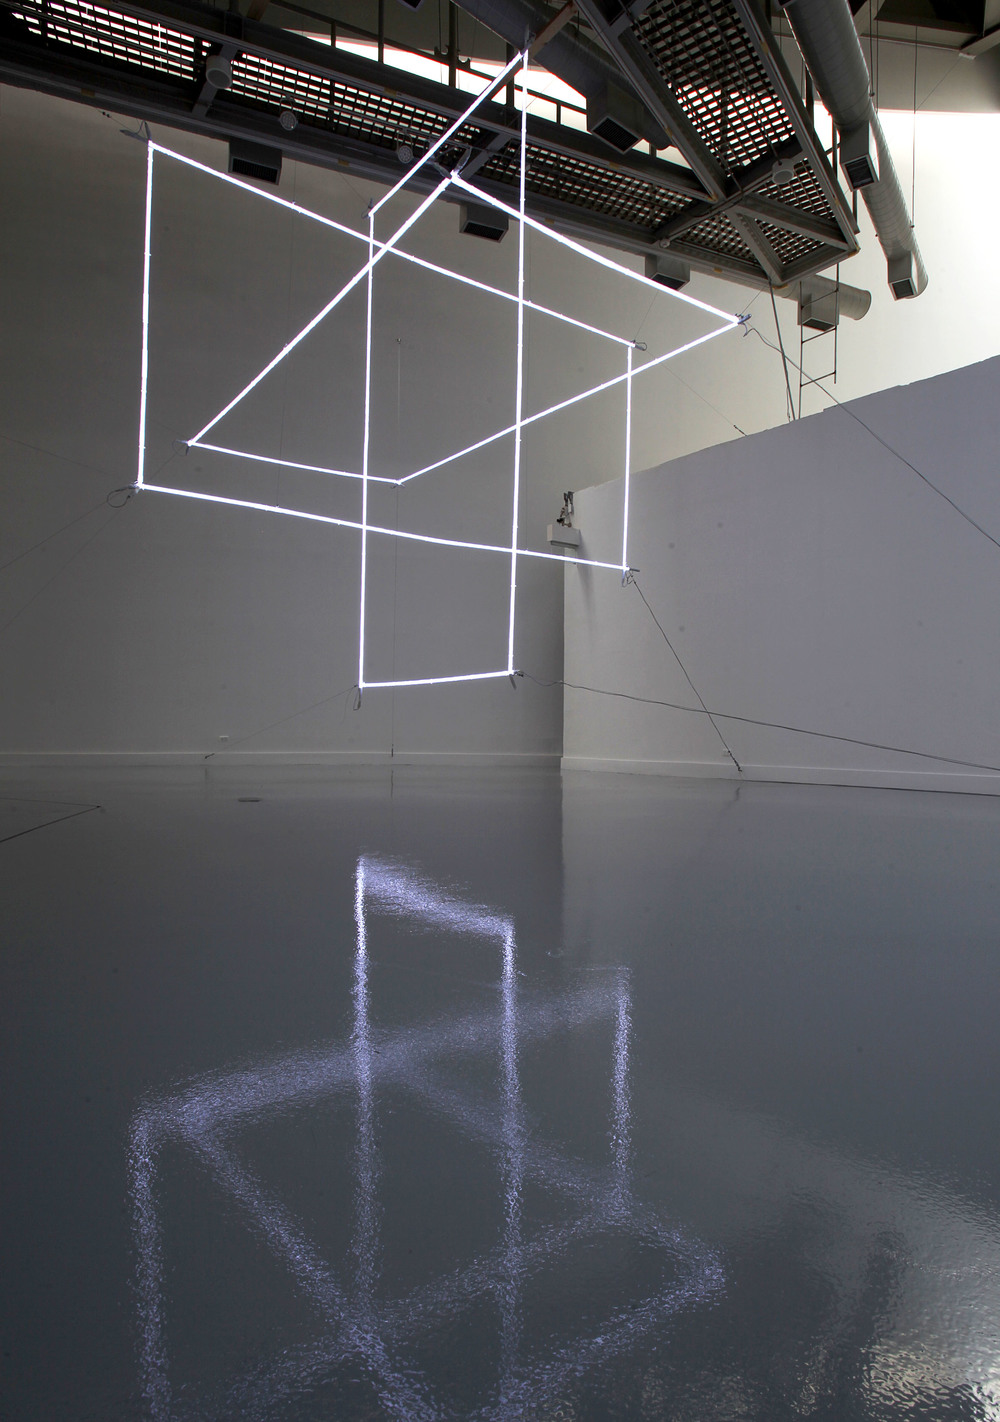 Platonic Spin, 2013, Neon, sequenced control system